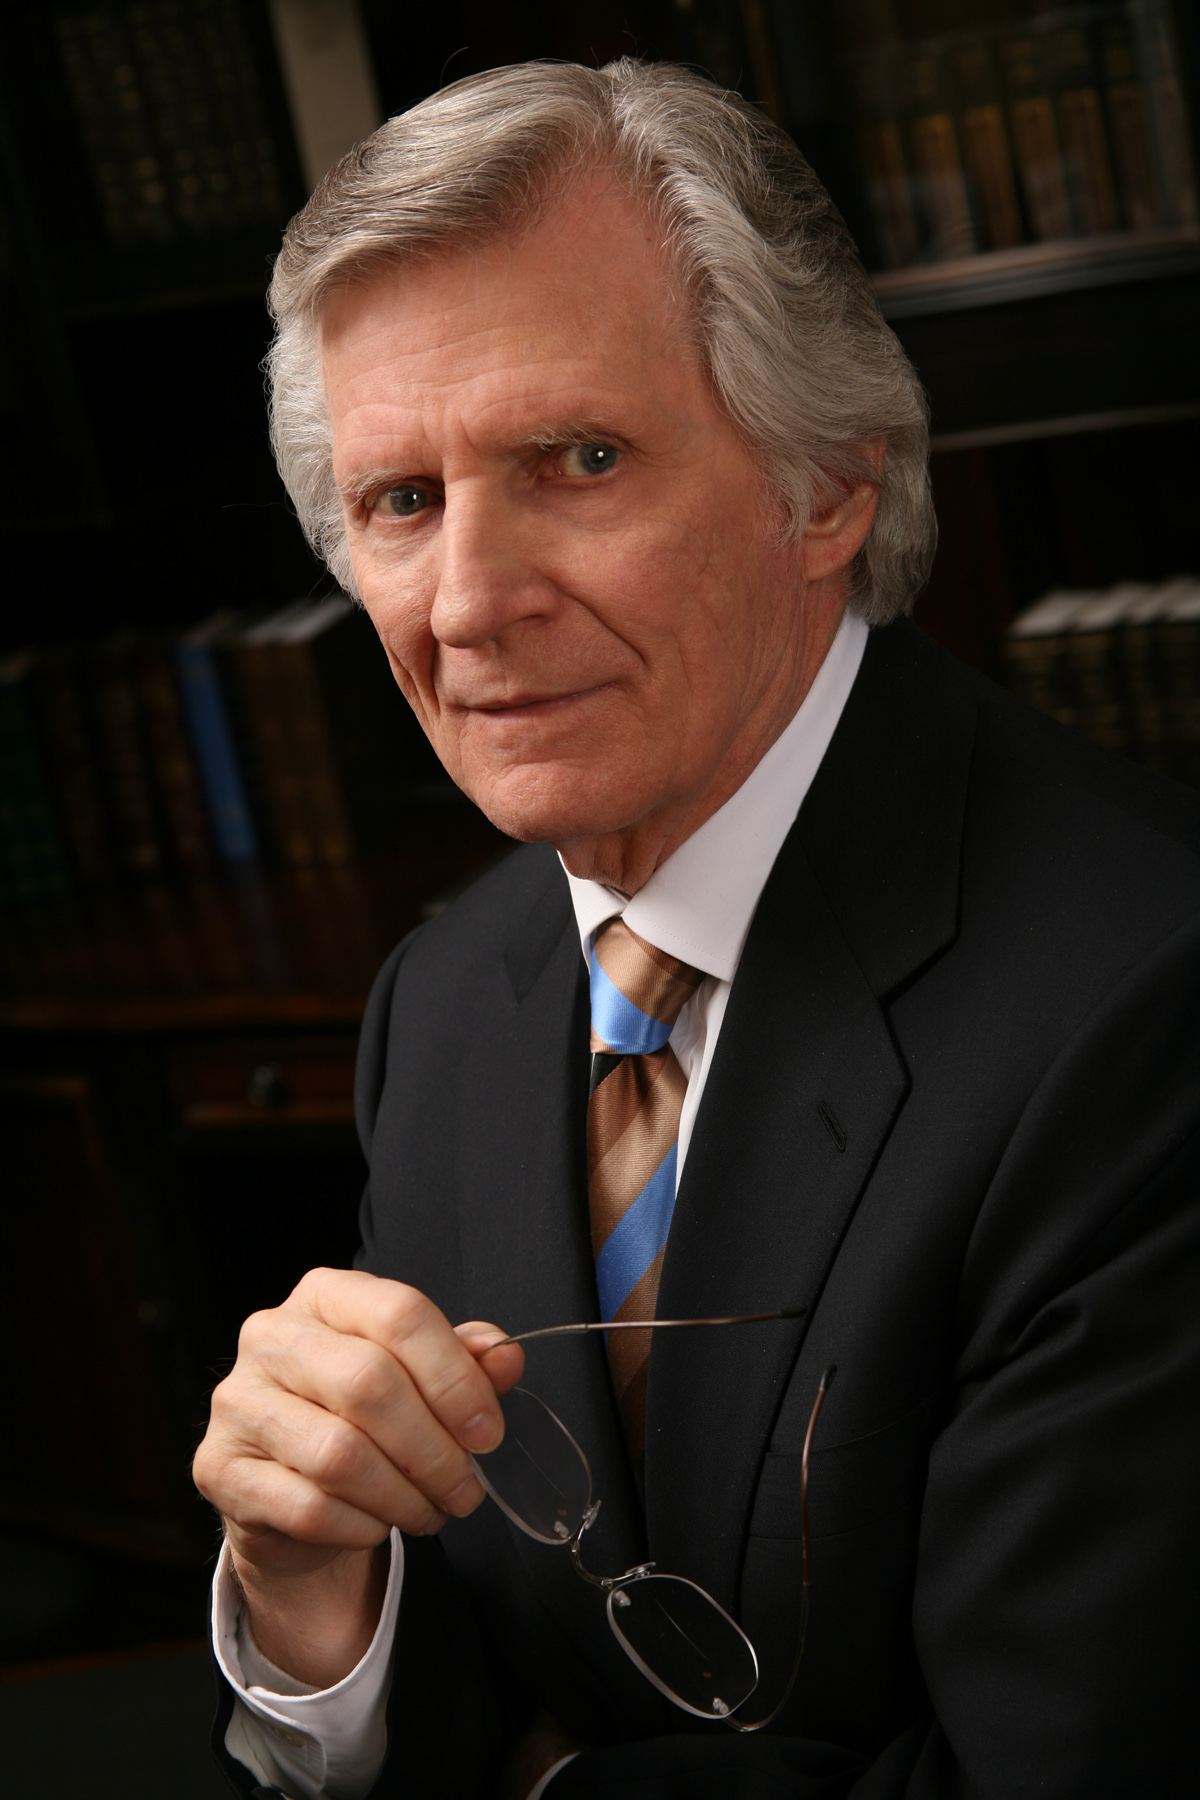 DAVID WILKERSON DEVOTIONALS